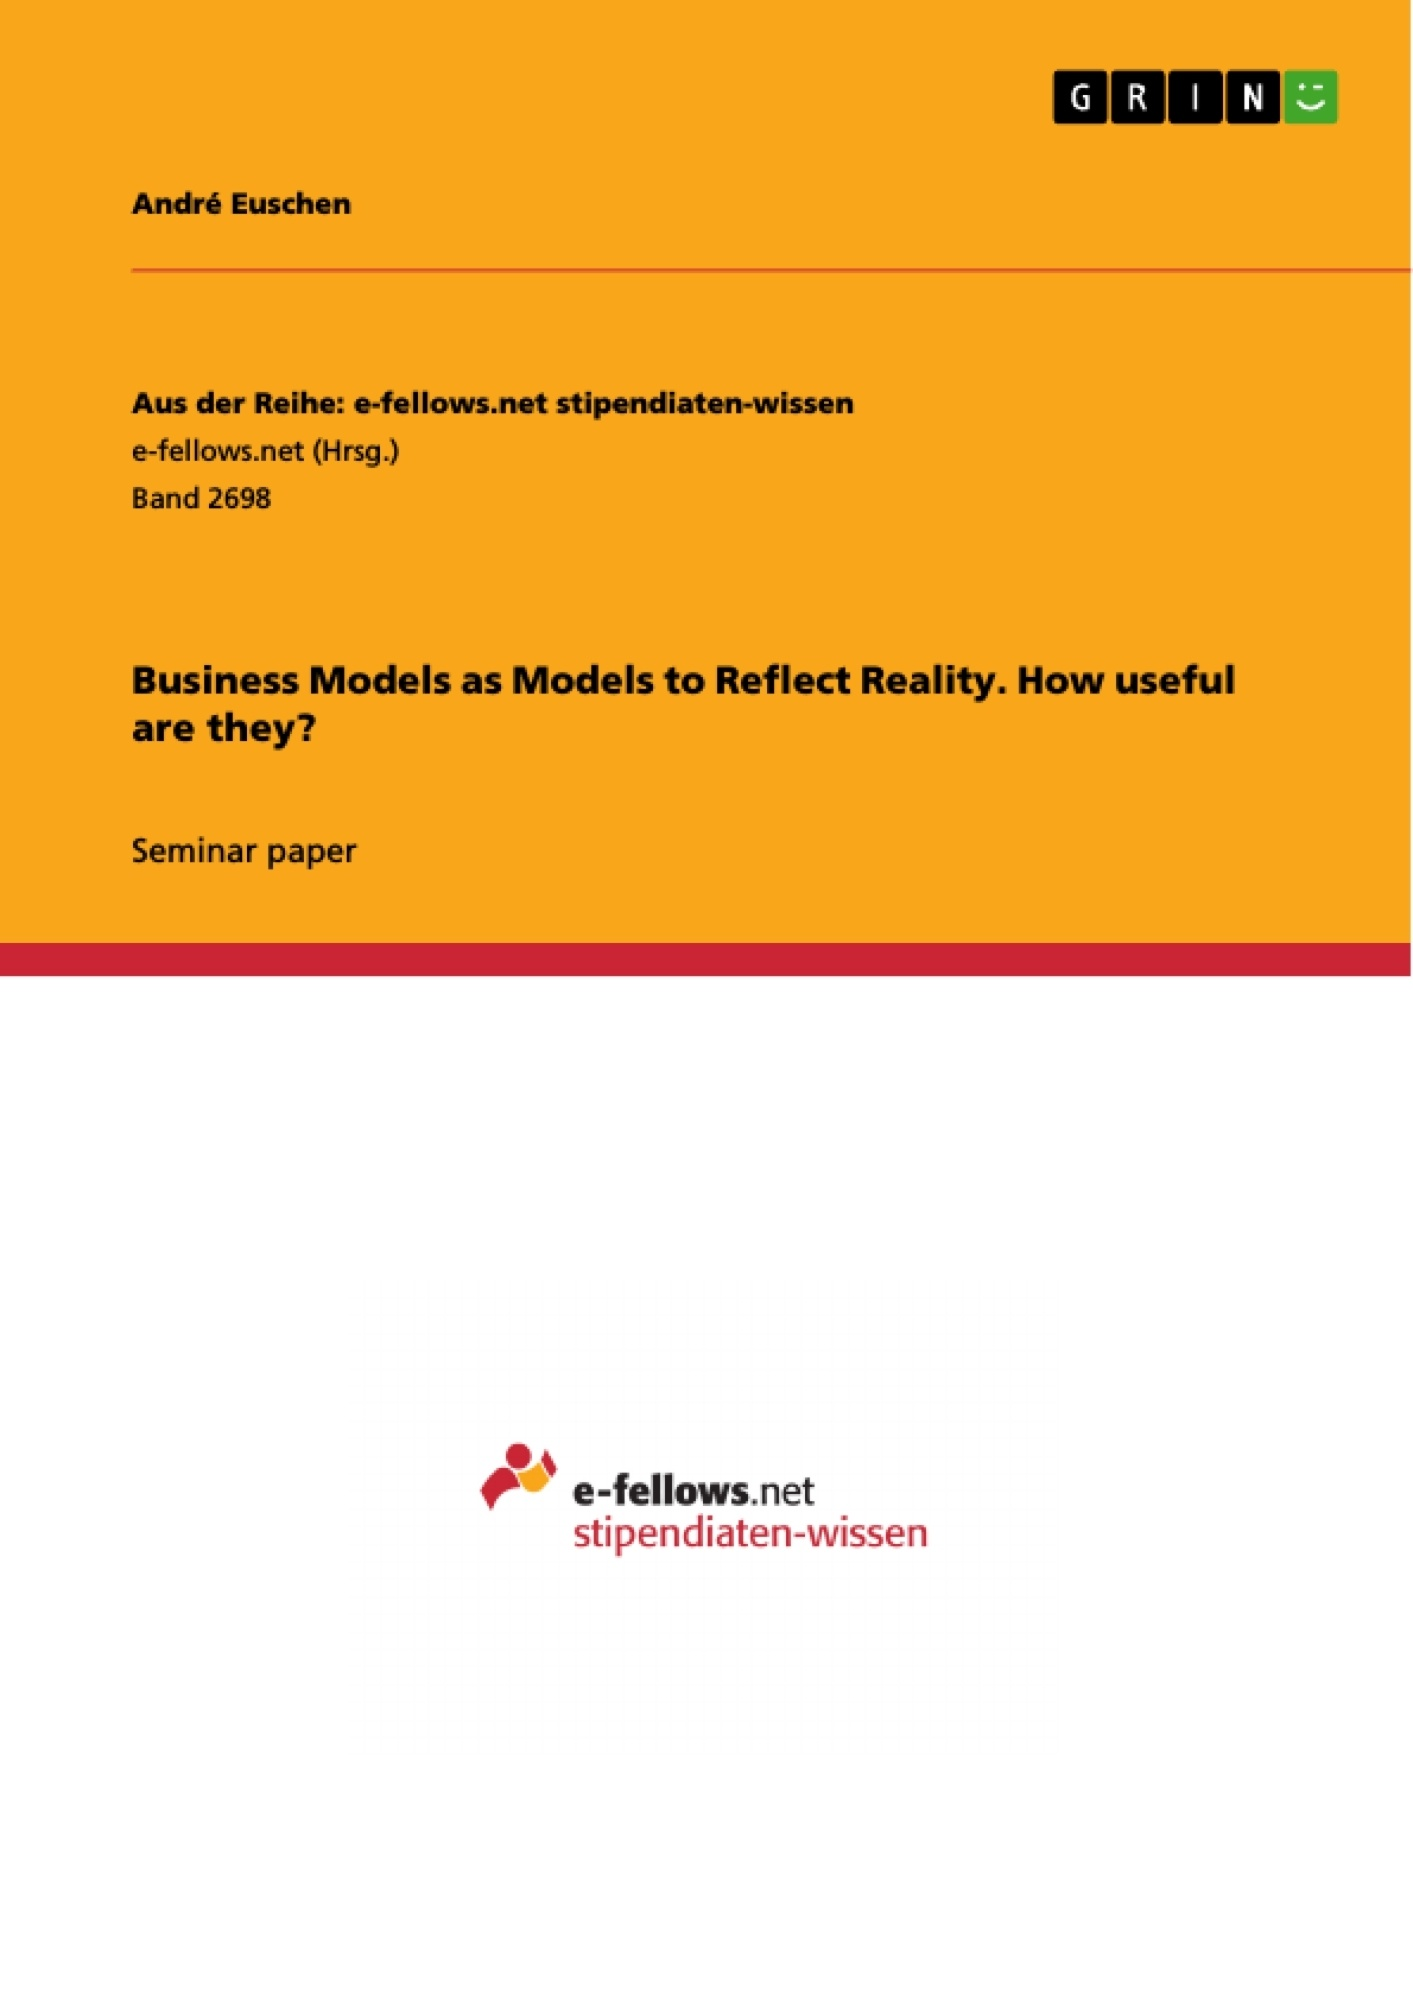 Title: Business Models as Models to Reflect Reality. How useful are they?